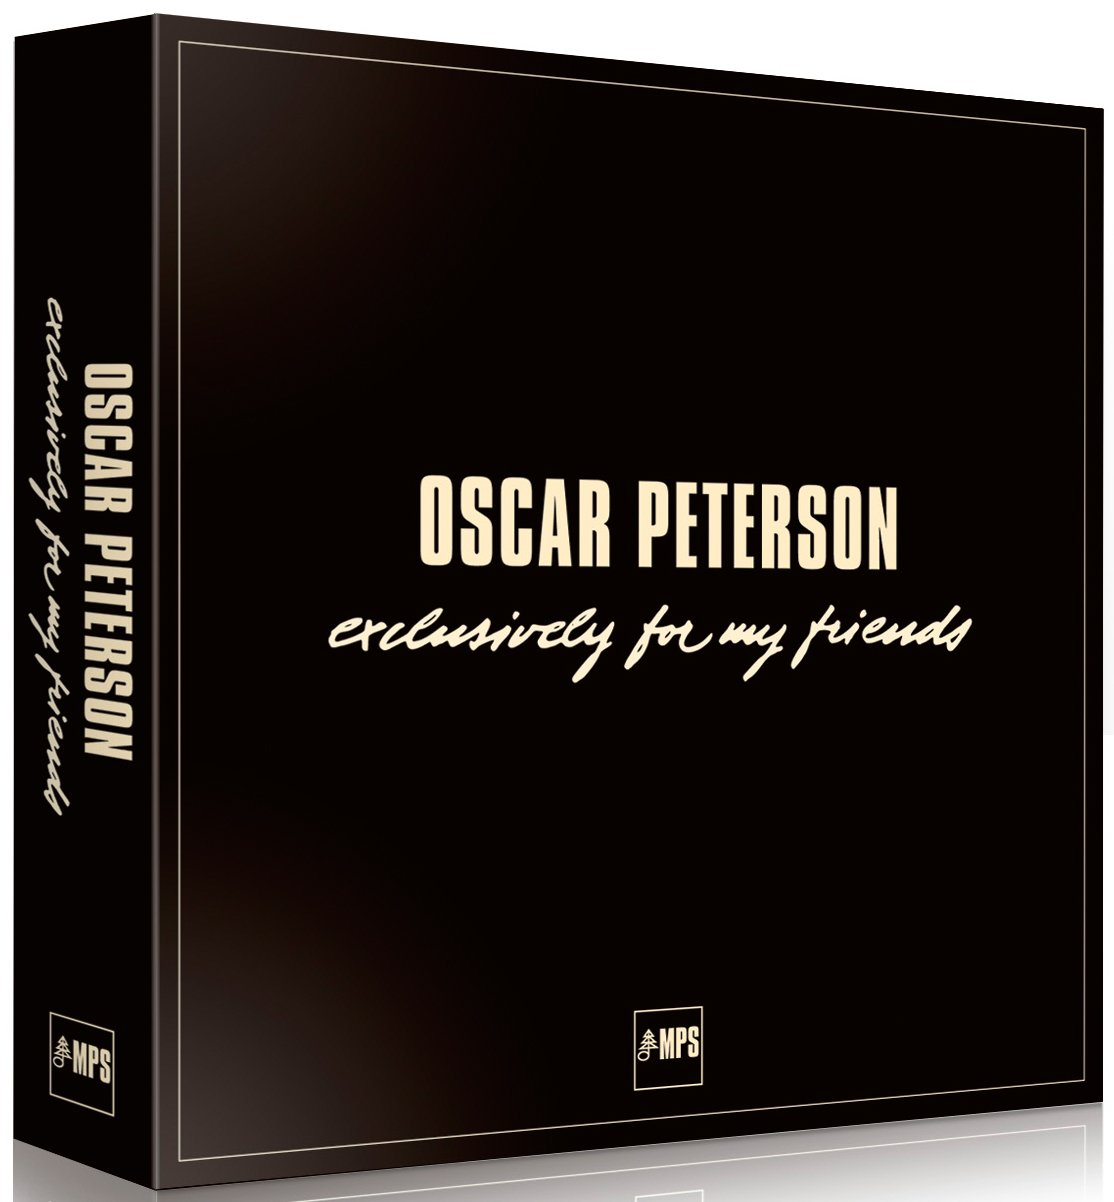 Oscar Peterson: Exclusively for My Friends by VINYL